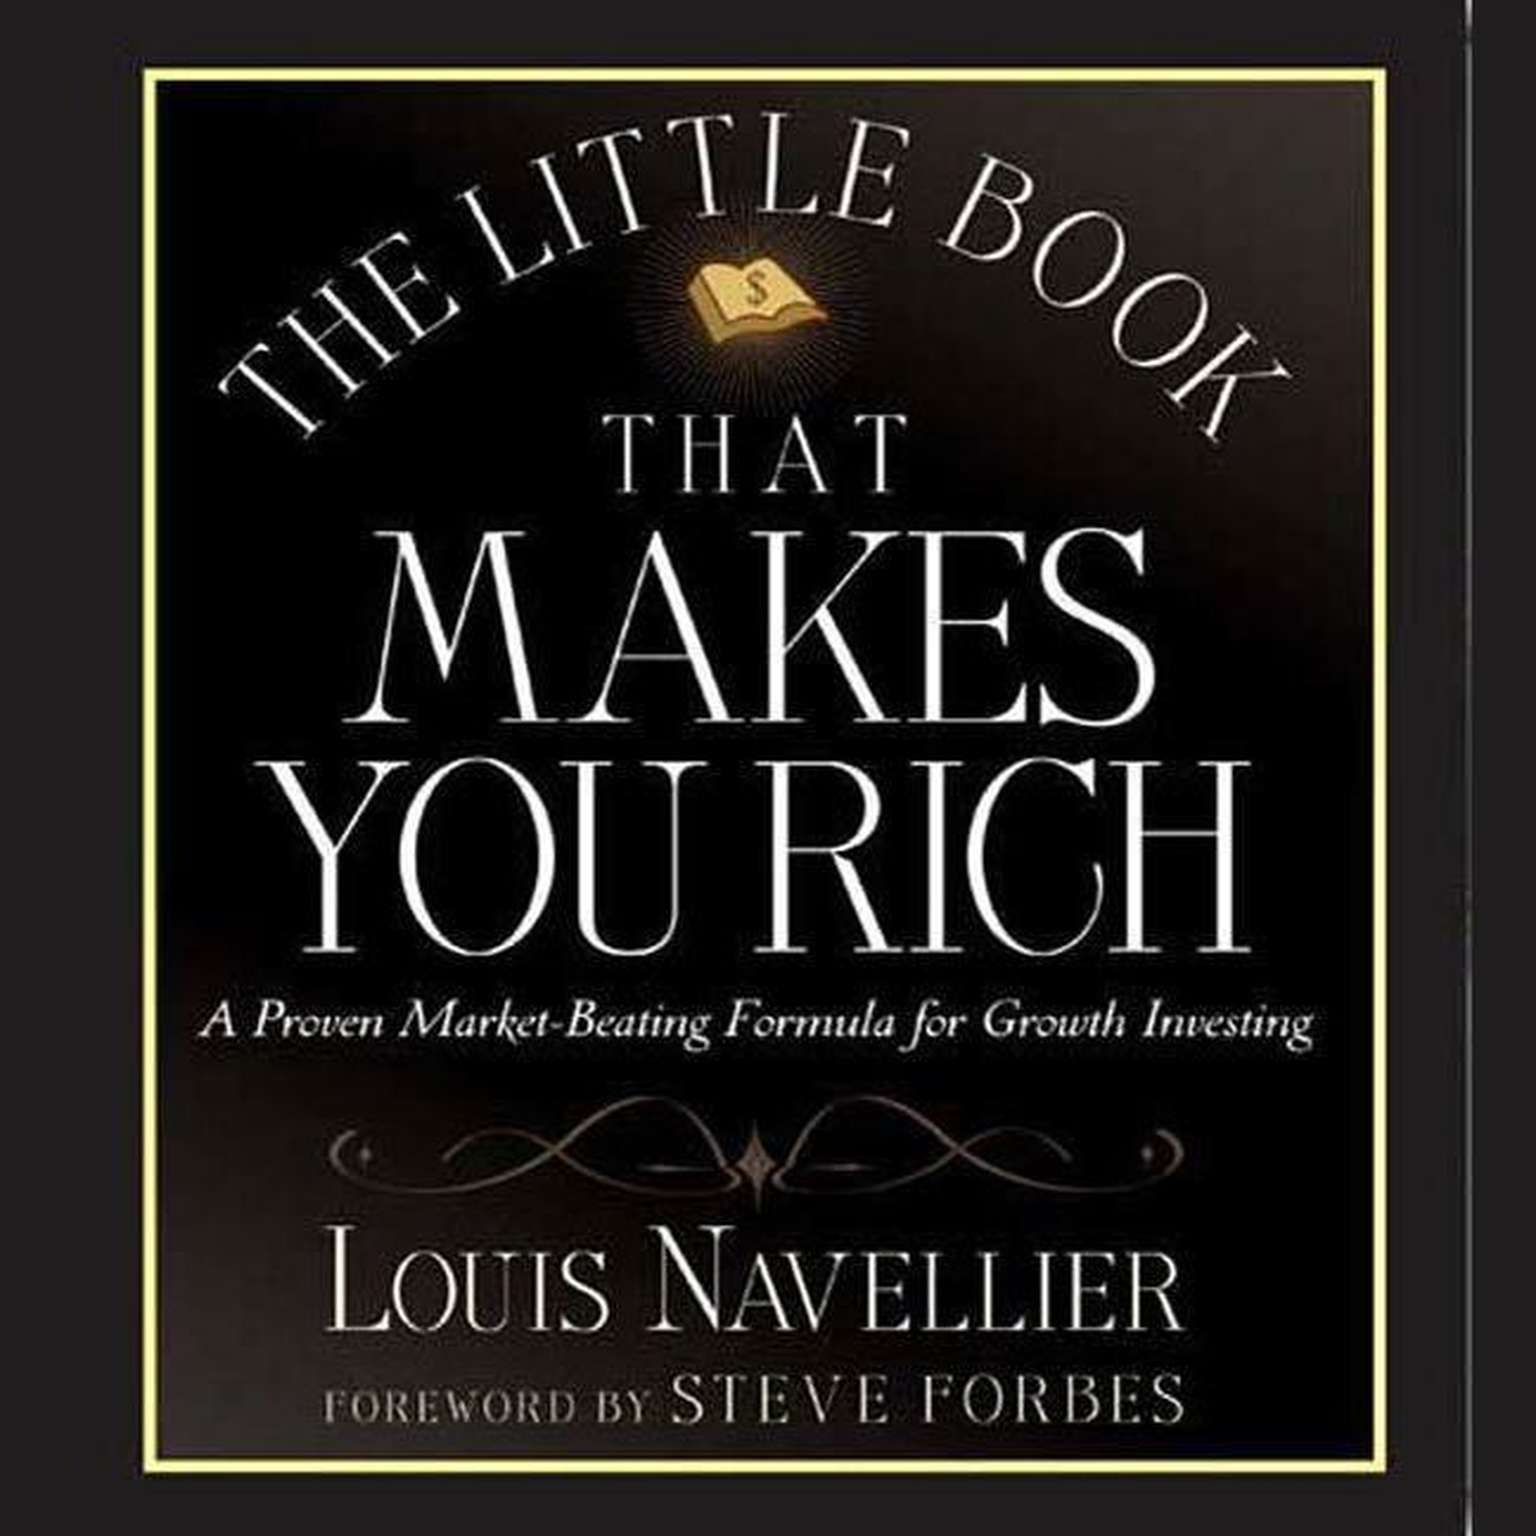 Printable The Little Book That Makes You Rich: A Proven Market-Beating Formula for Growth Investing Audiobook Cover Art